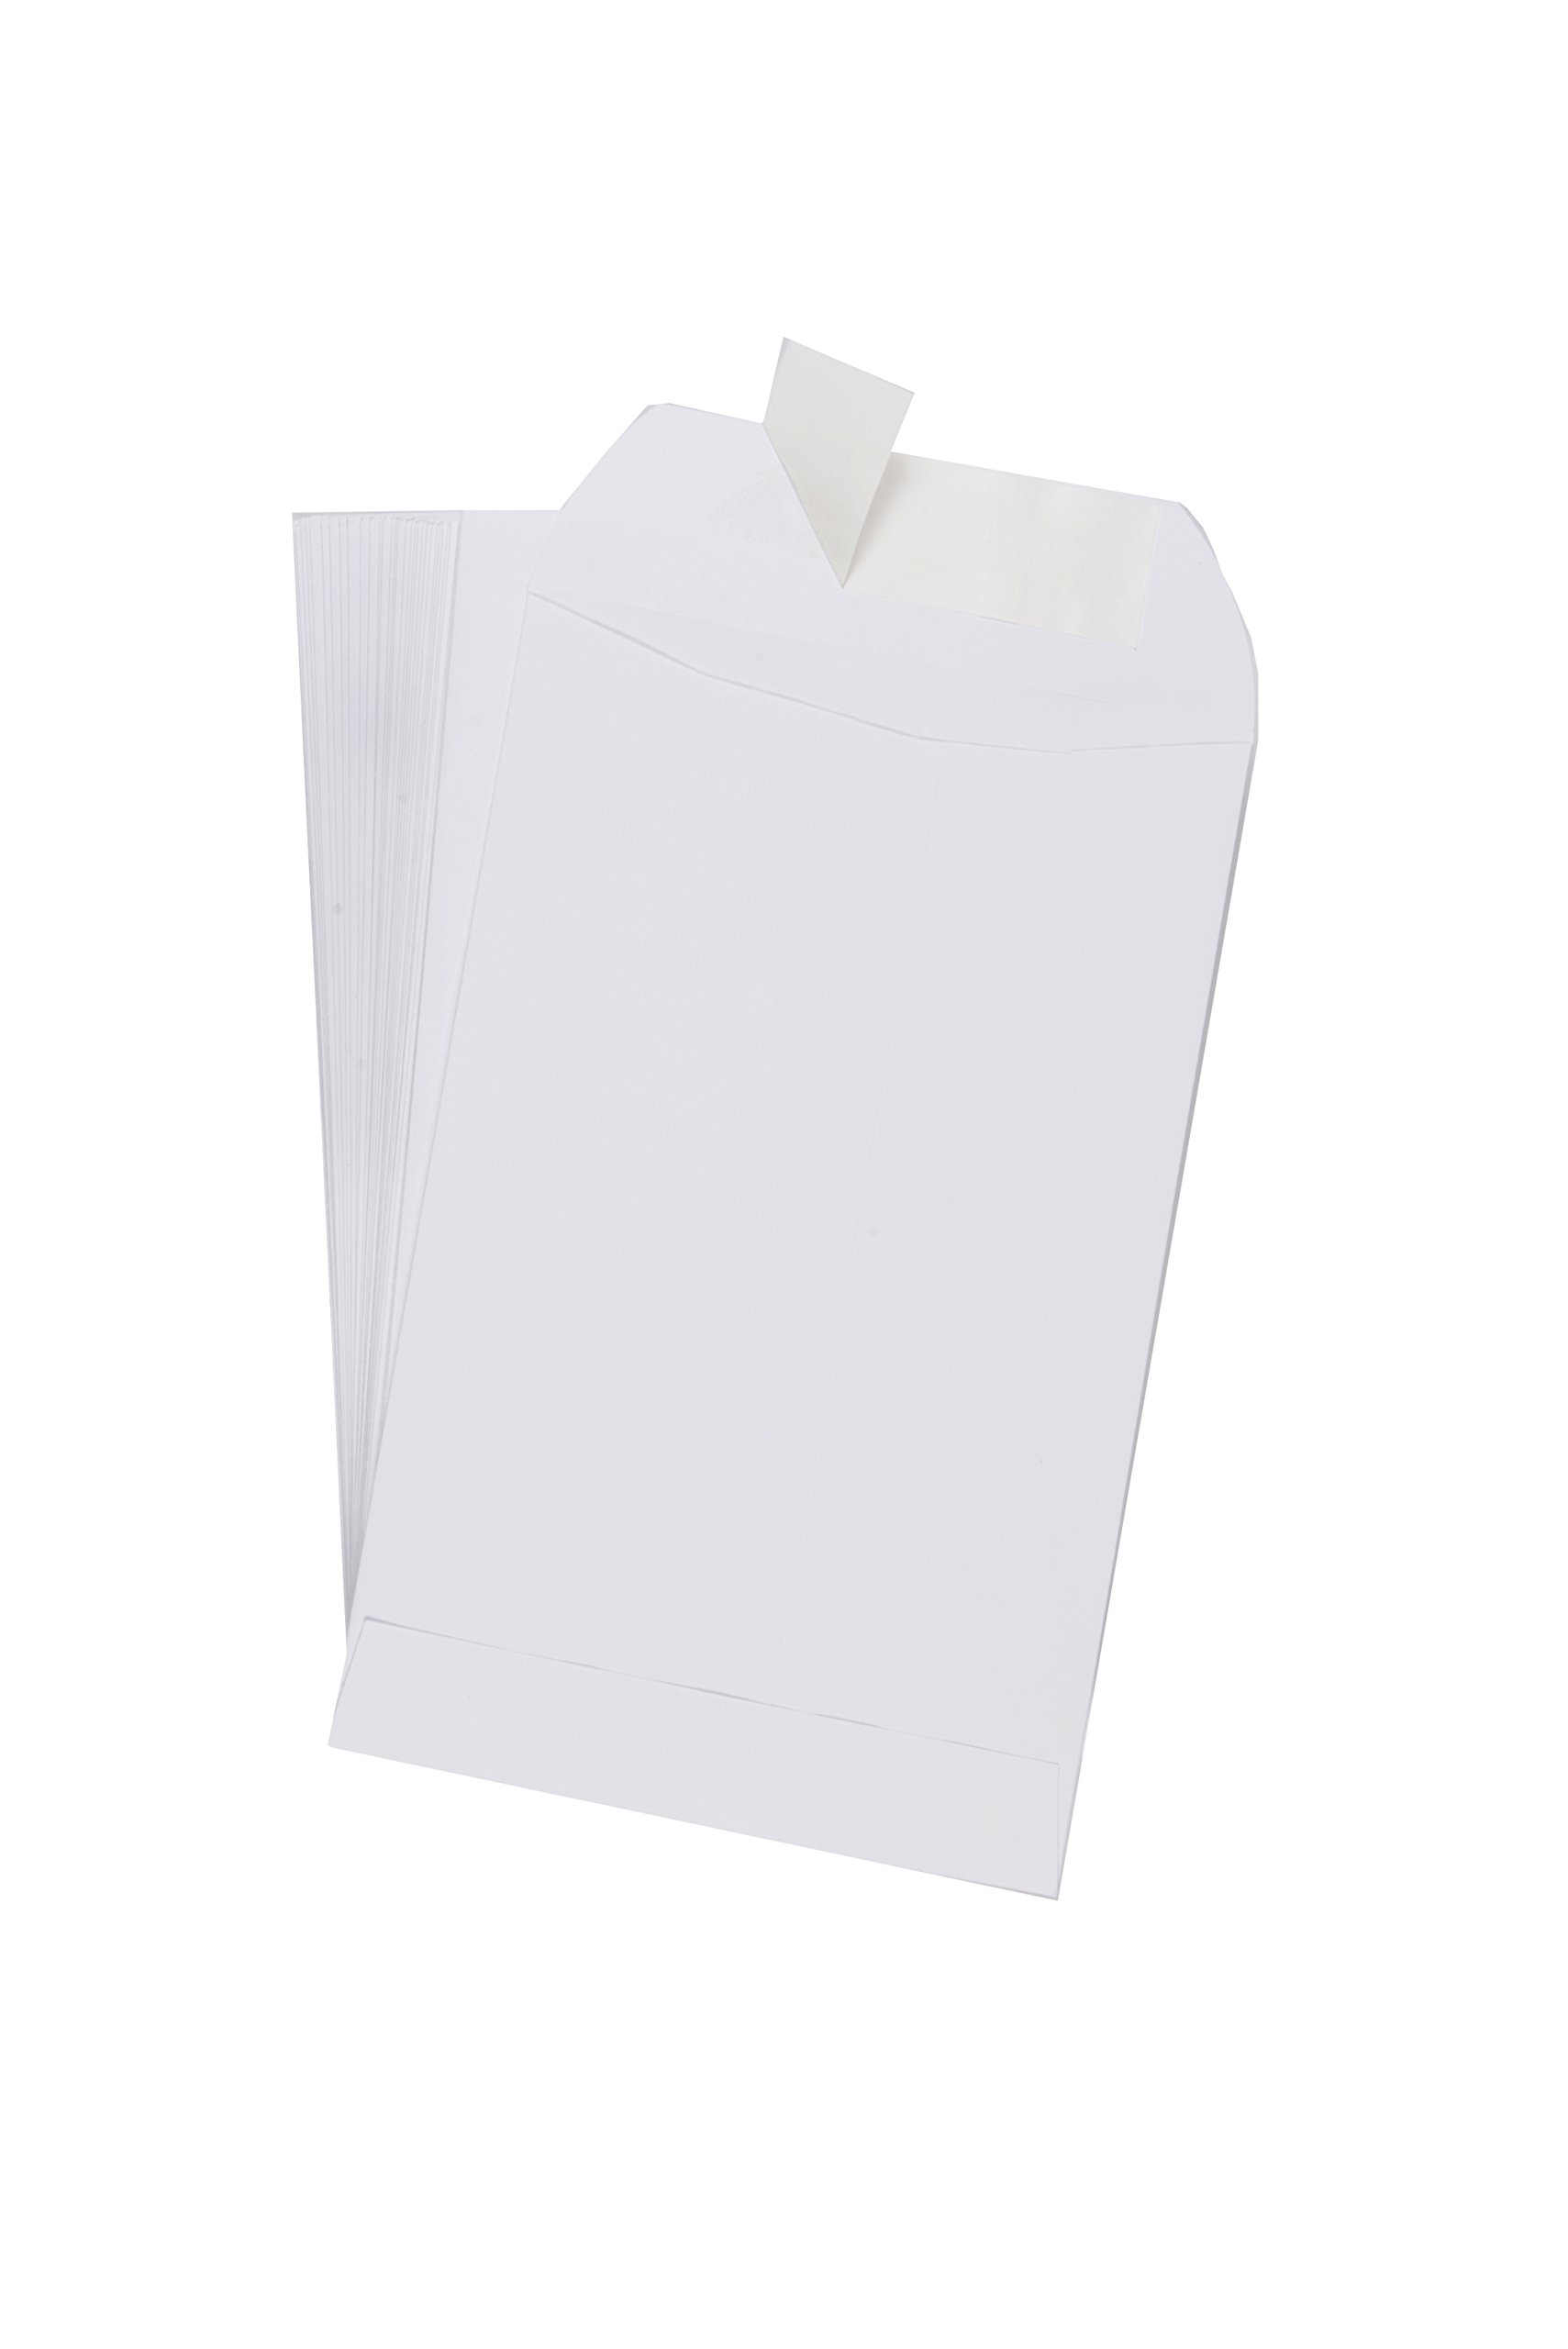 EnDoc Redi-Seal Catalog Envelopes – 6 x 9 Inch Bright White Open End Envelopes with Self Seal Closure – 28lb Heavyweight Paper Envelopes for Home, Office, Business, Legal or School – 250 Count